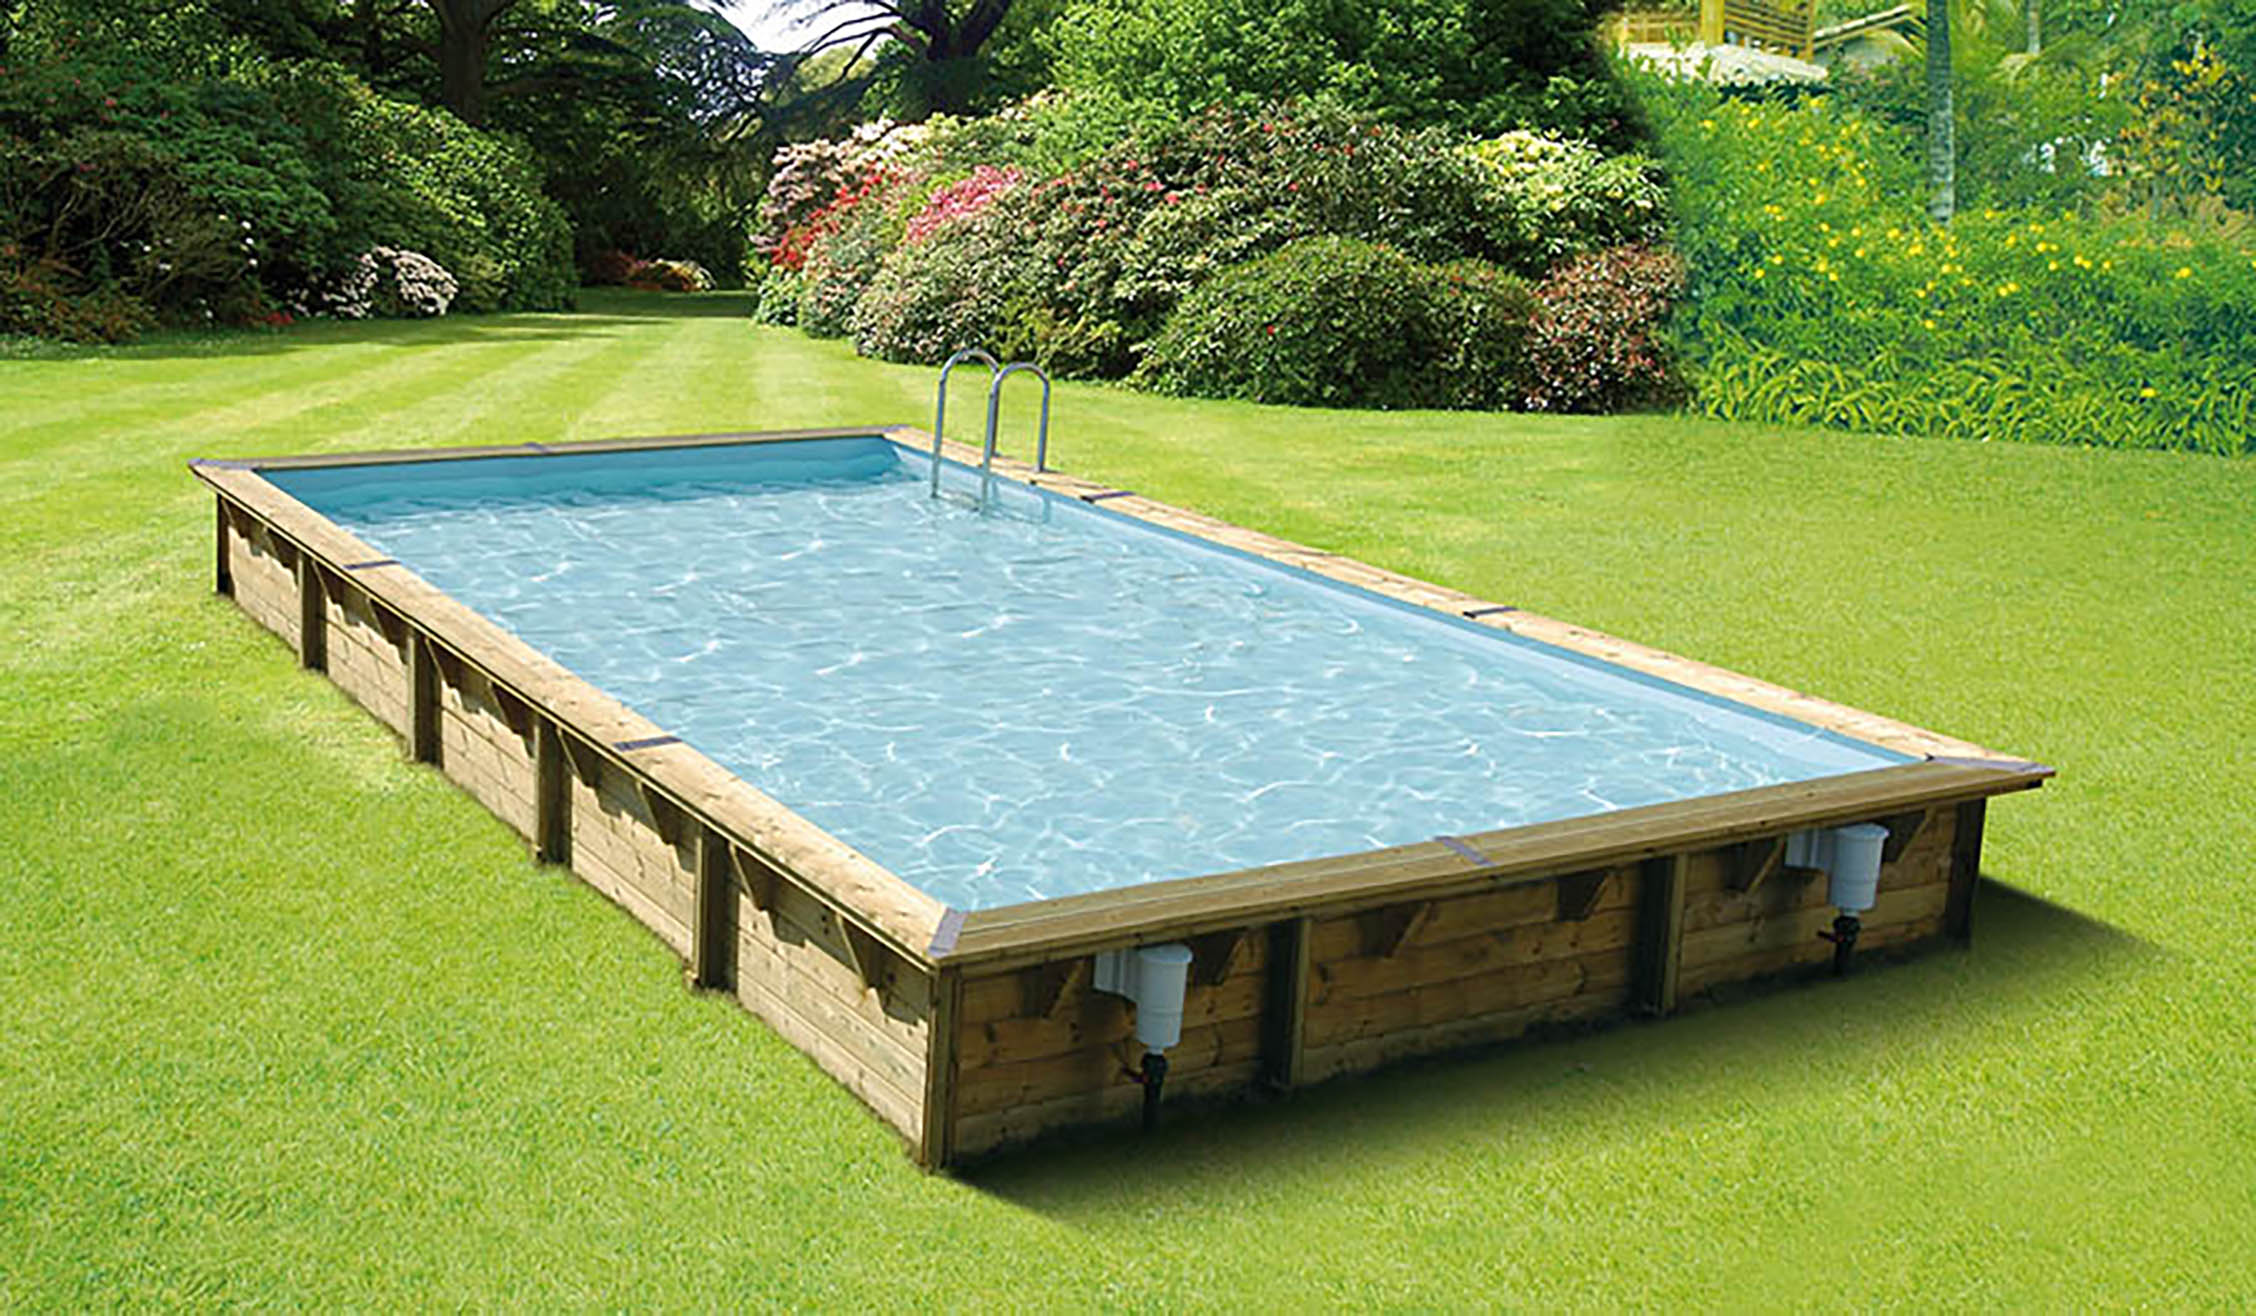 Construction piscines nimes gepad piscines et spa 30000 for Piscine kit en bois